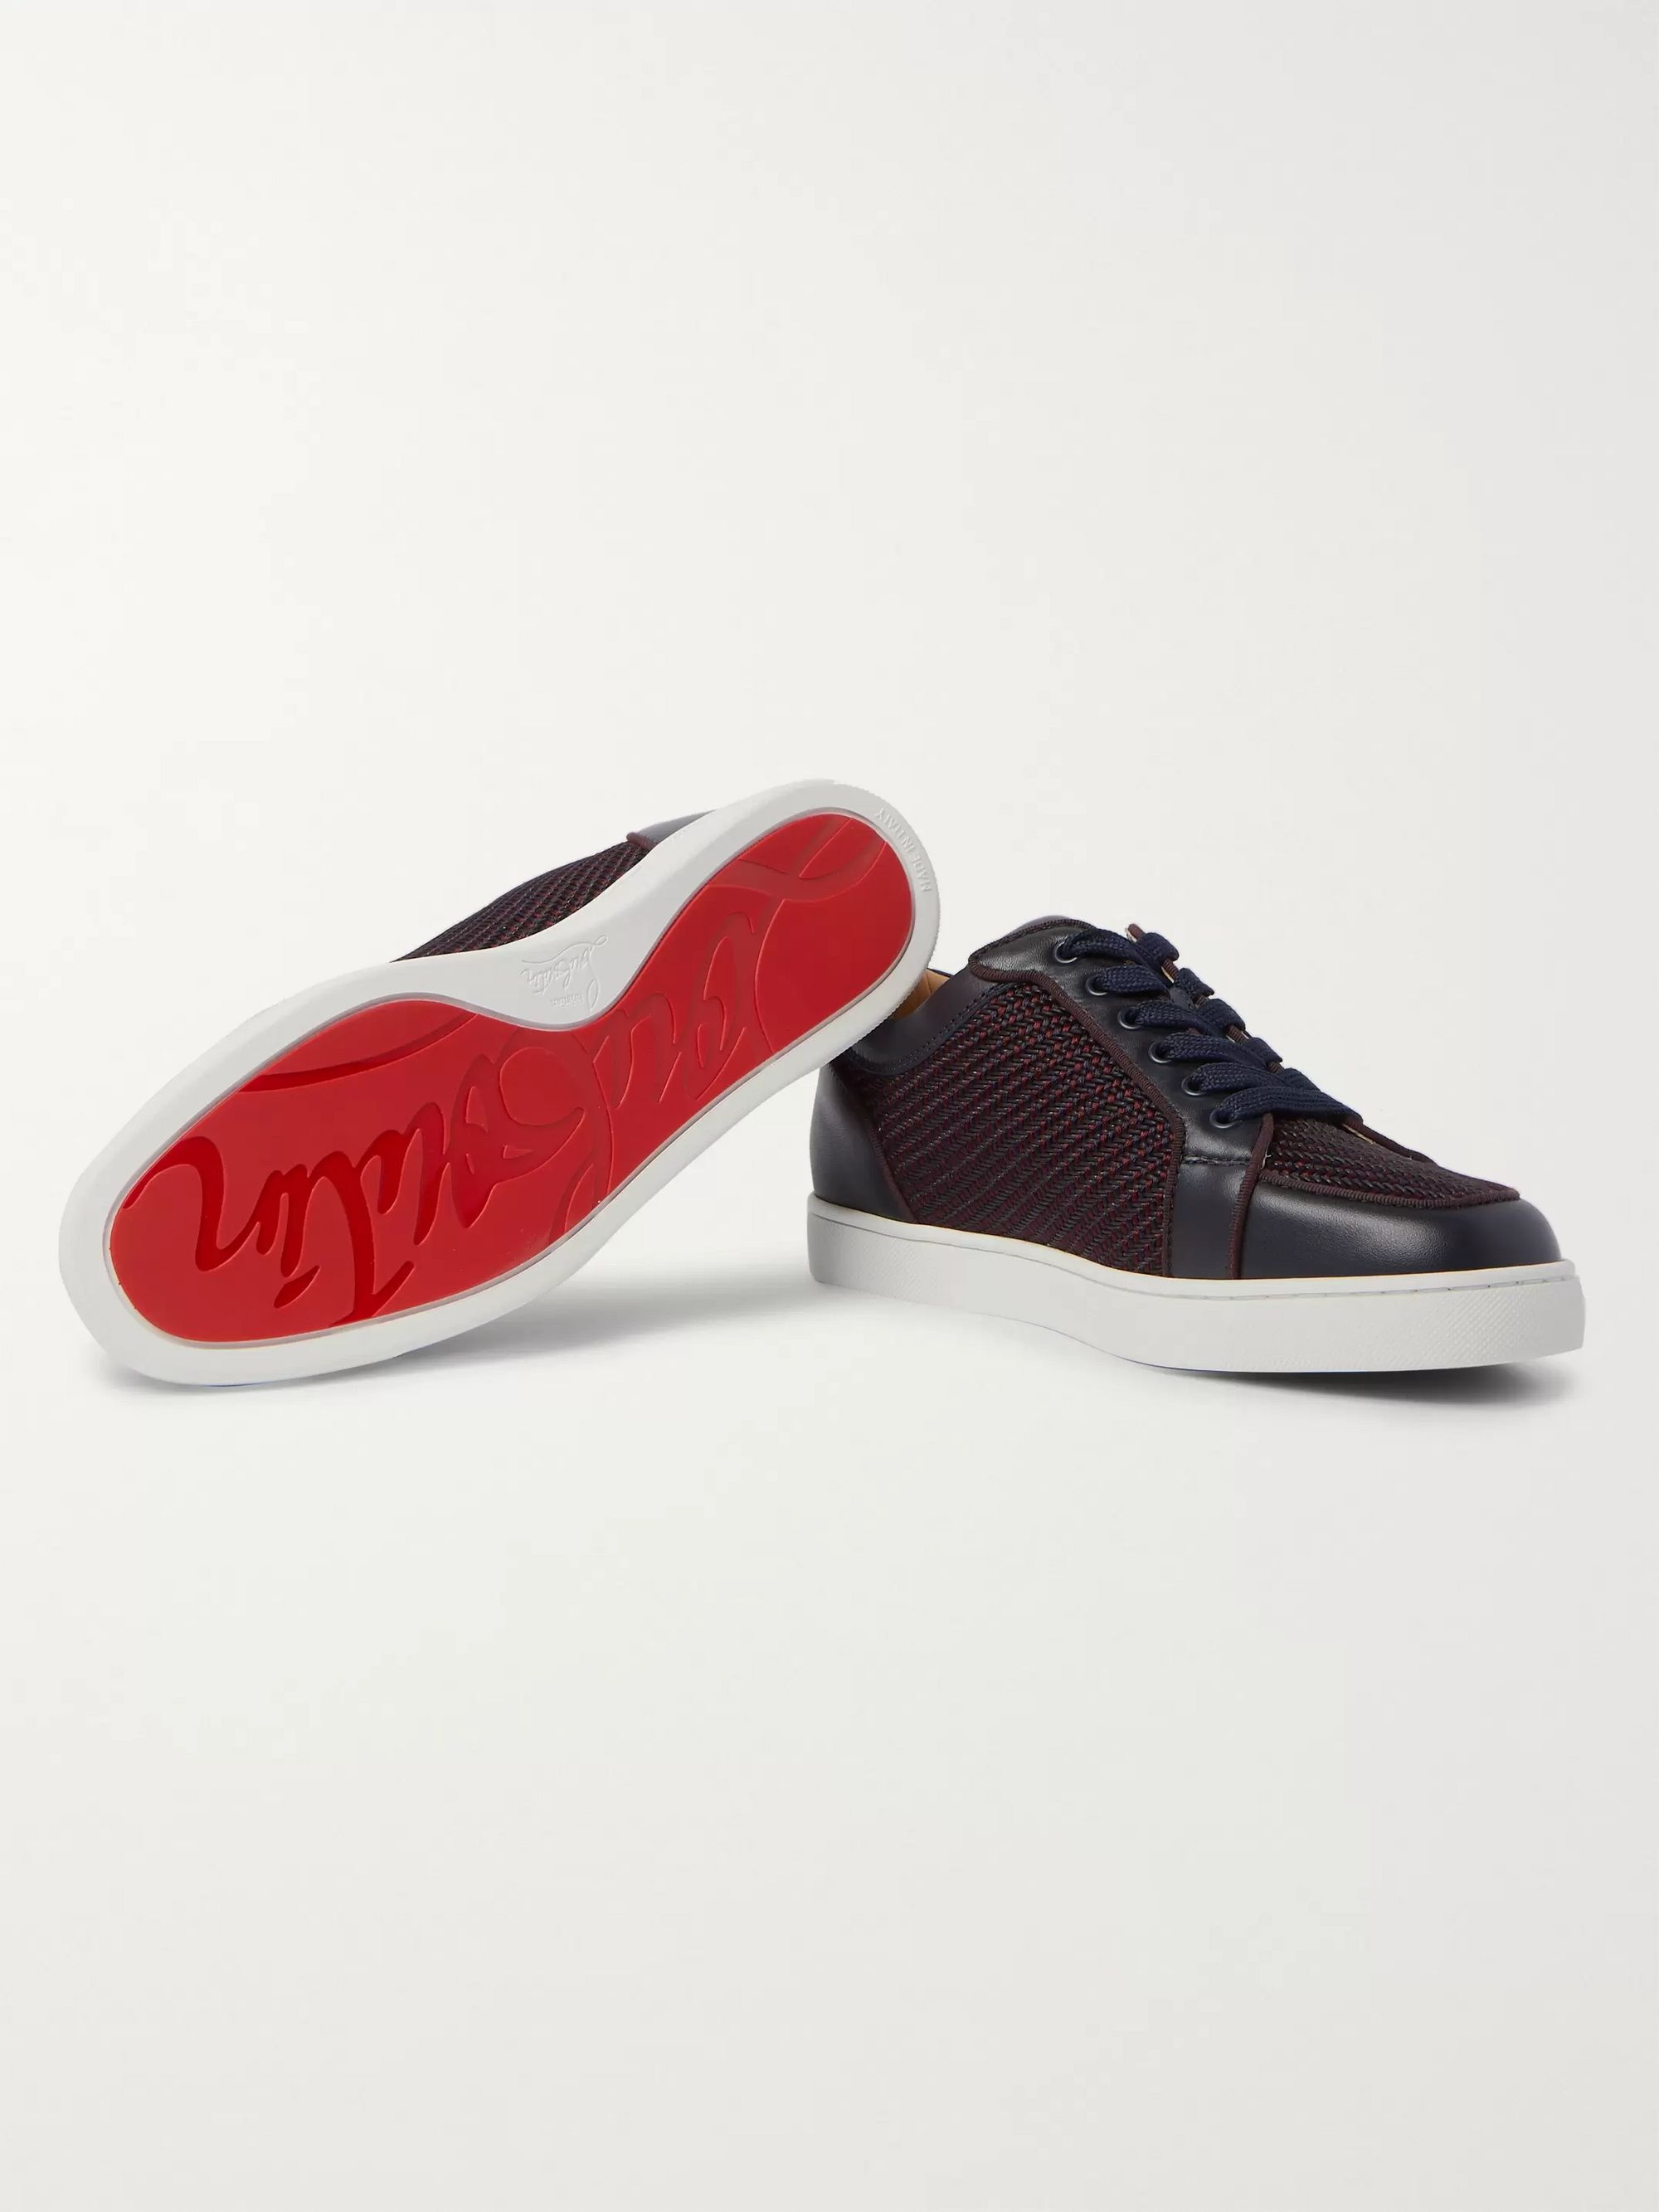 Christian Louboutin Rantulow Orlato Leather and Raffia Sneakers